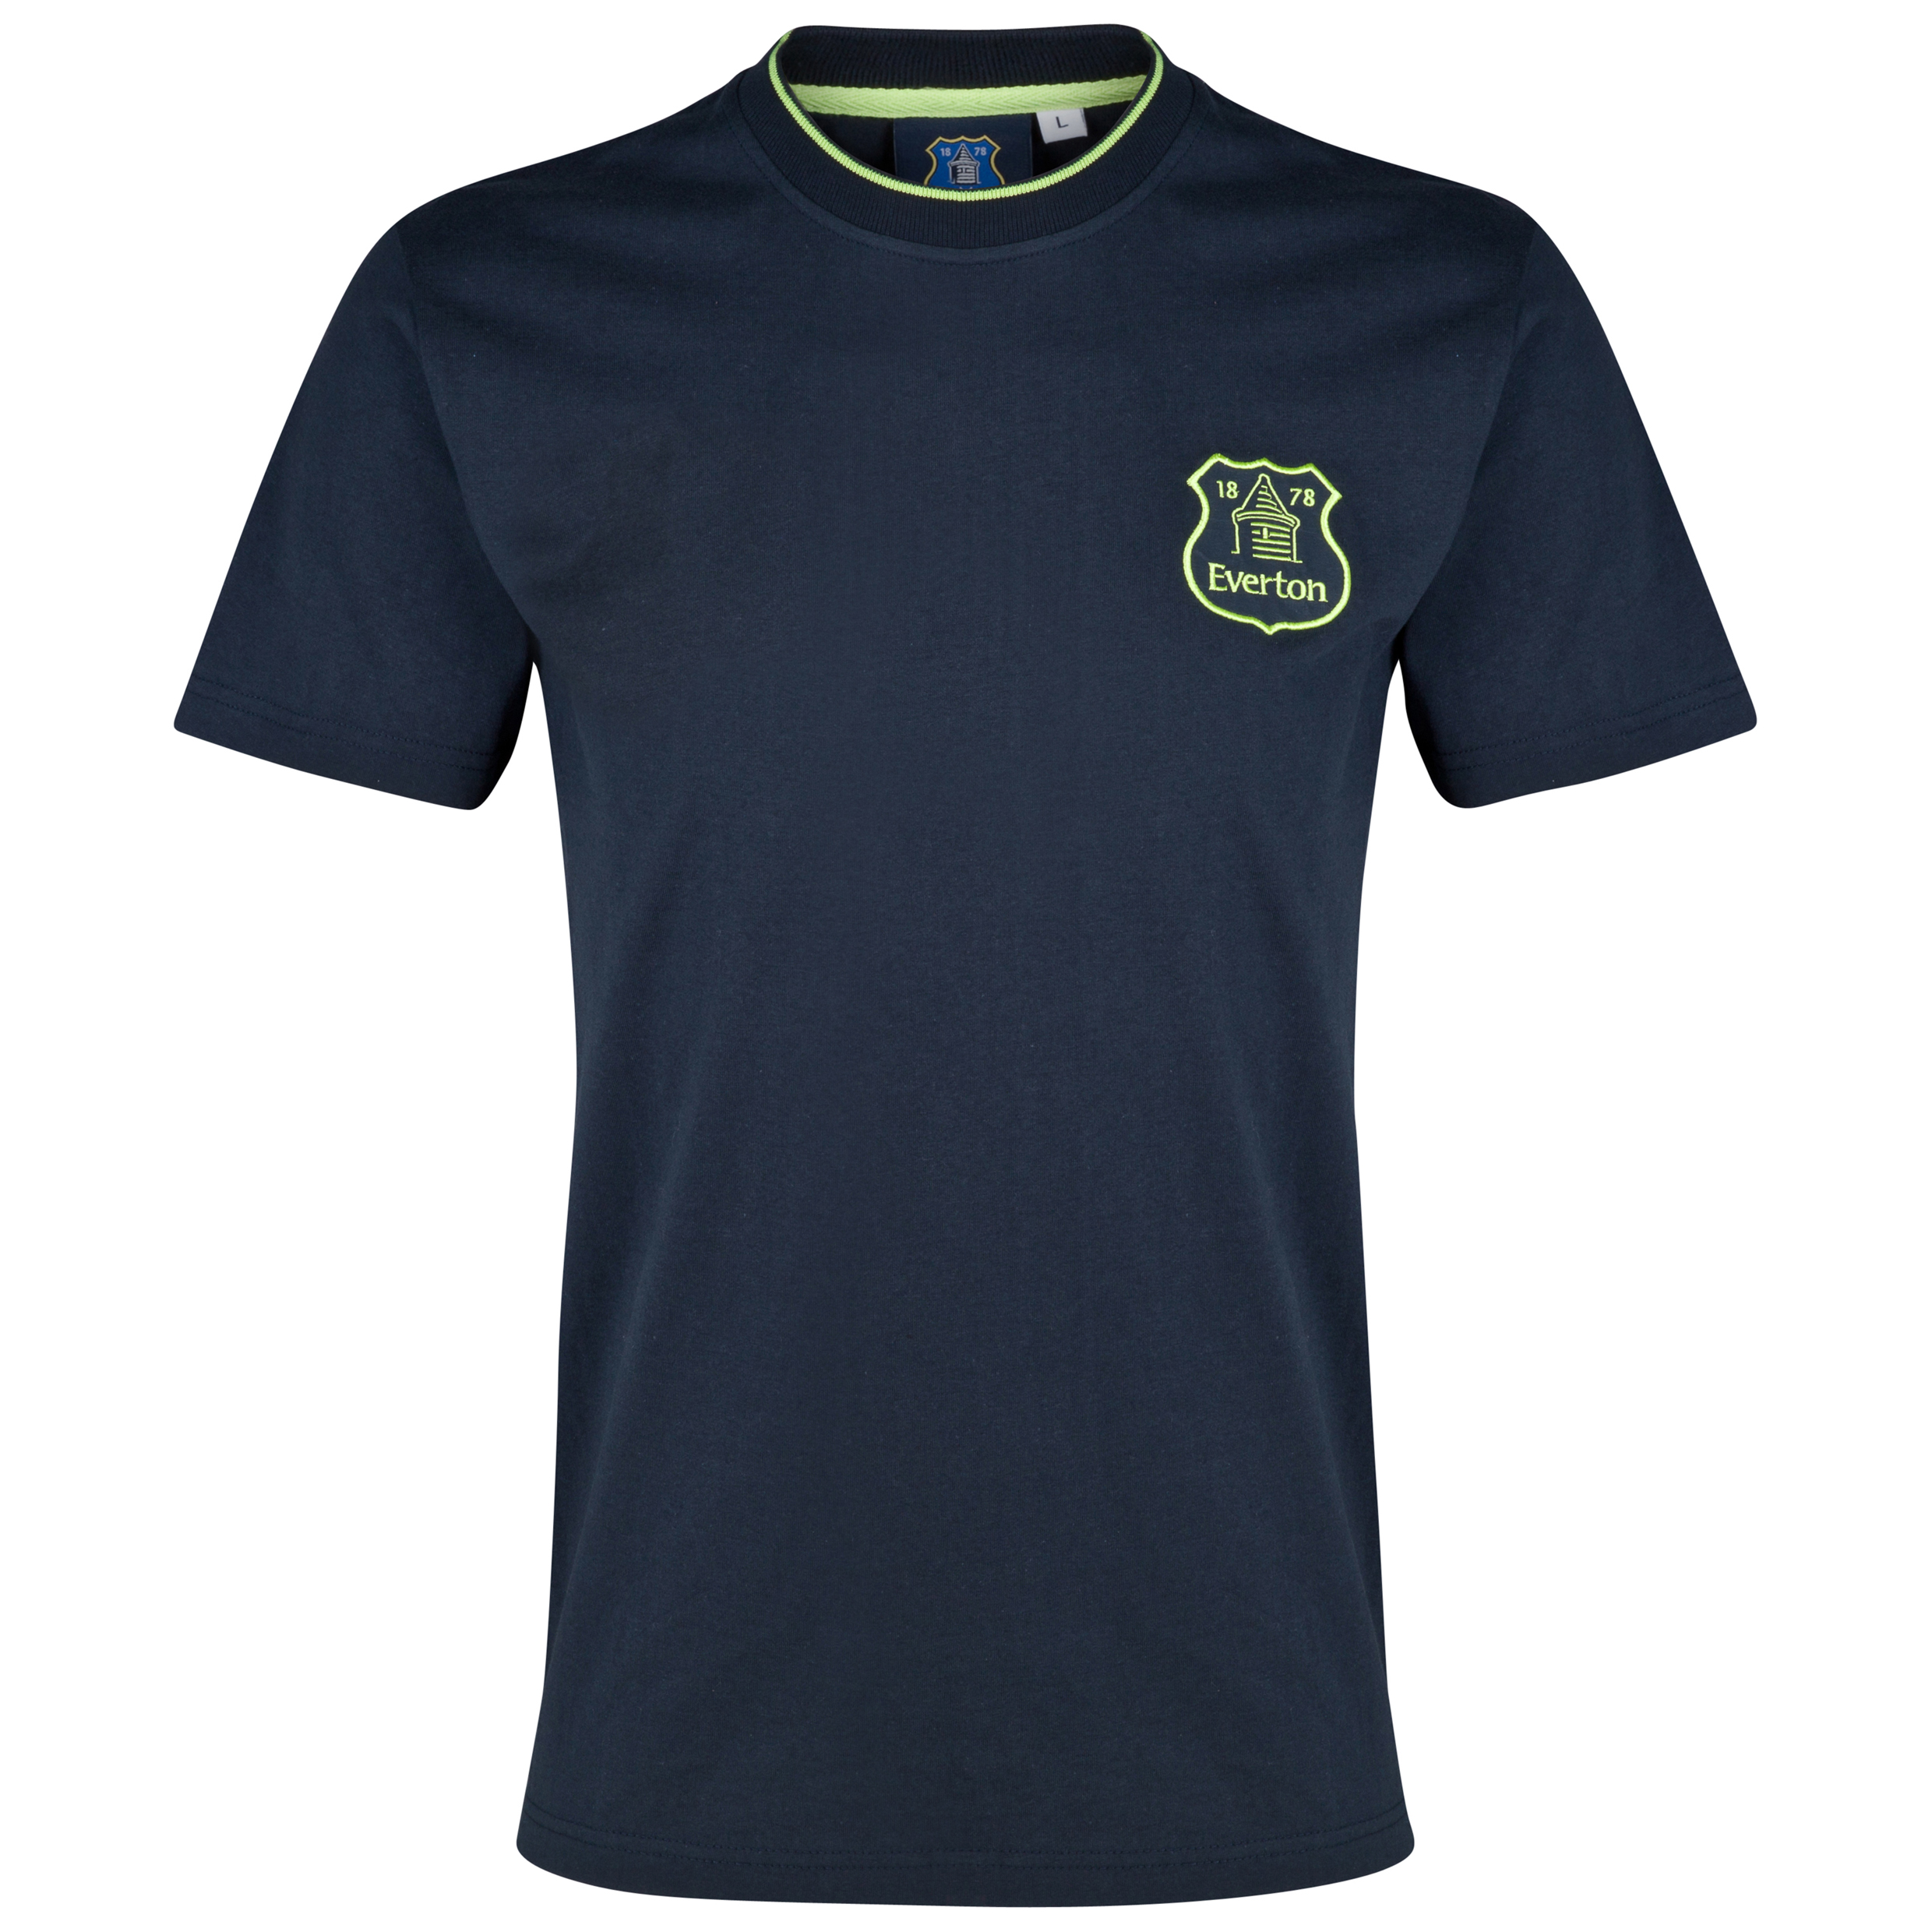 Everton Essentials Reign T-Shirt-Mens Navy